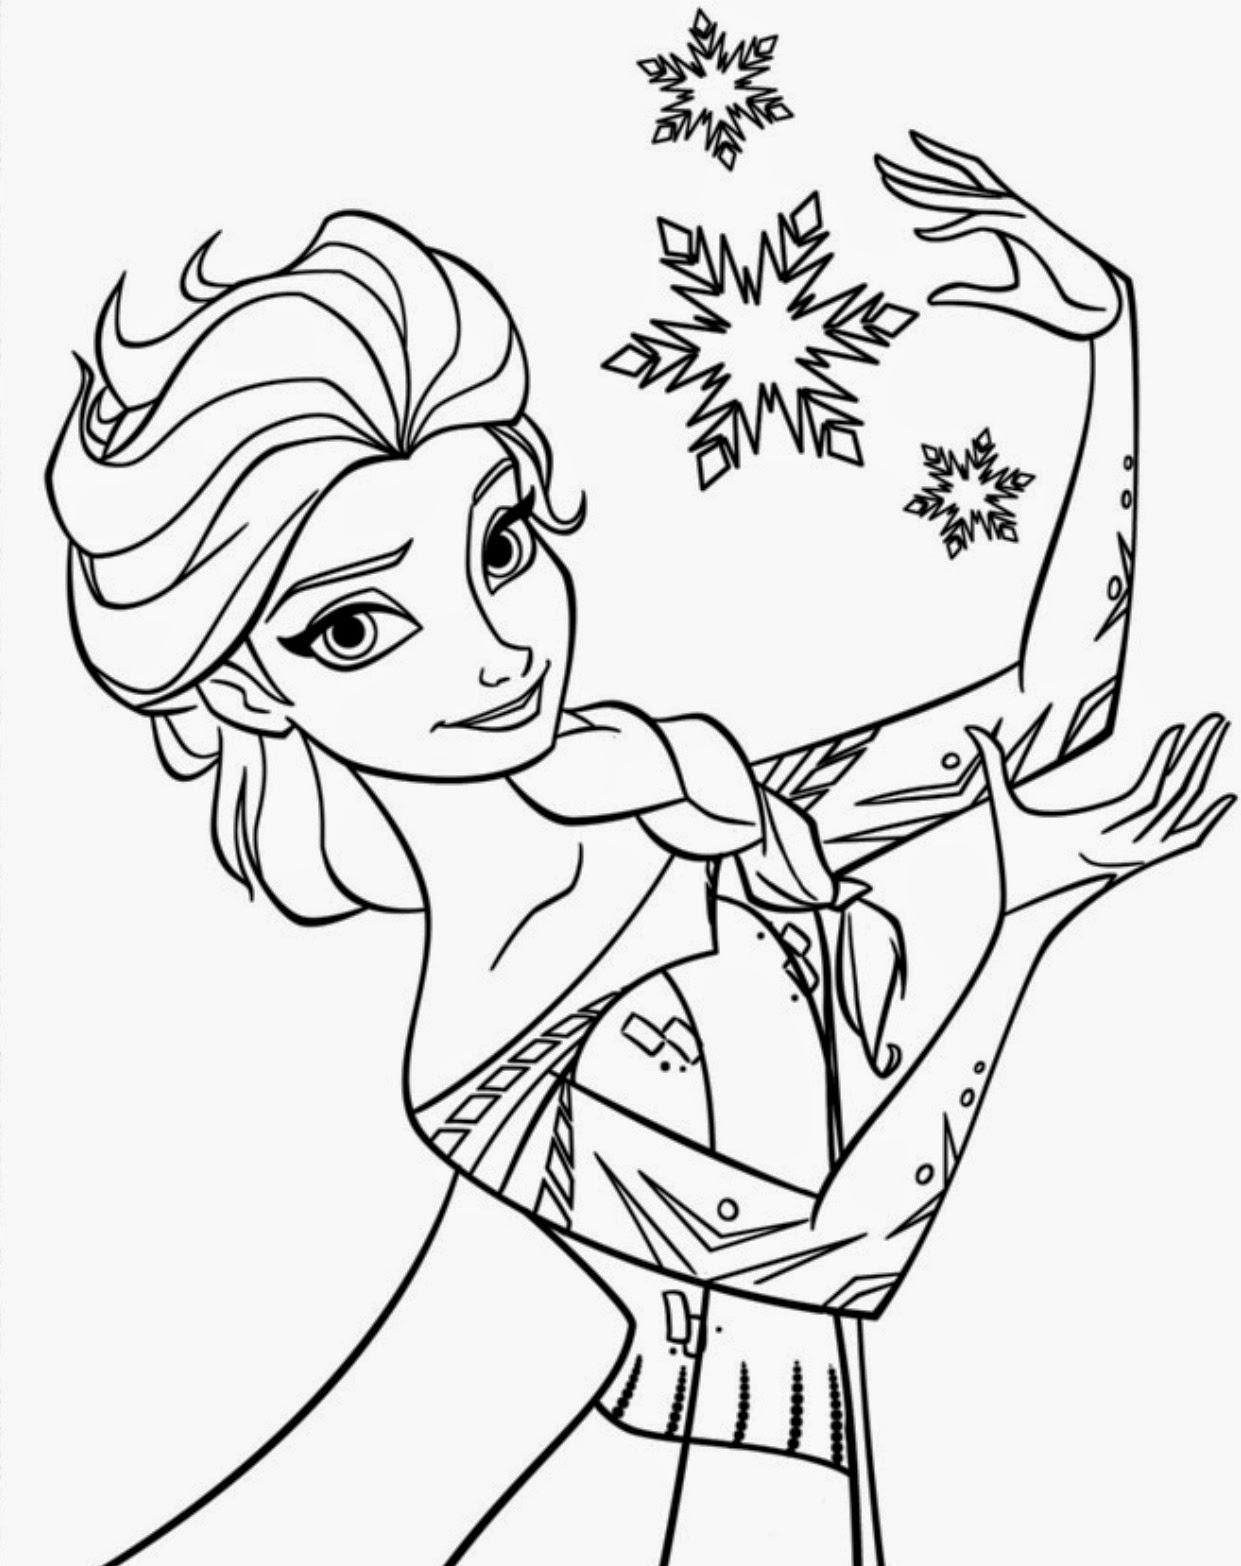 a coloring picture of frozen 15 beautiful disney frozen coloring pages free instant picture a of frozen coloring